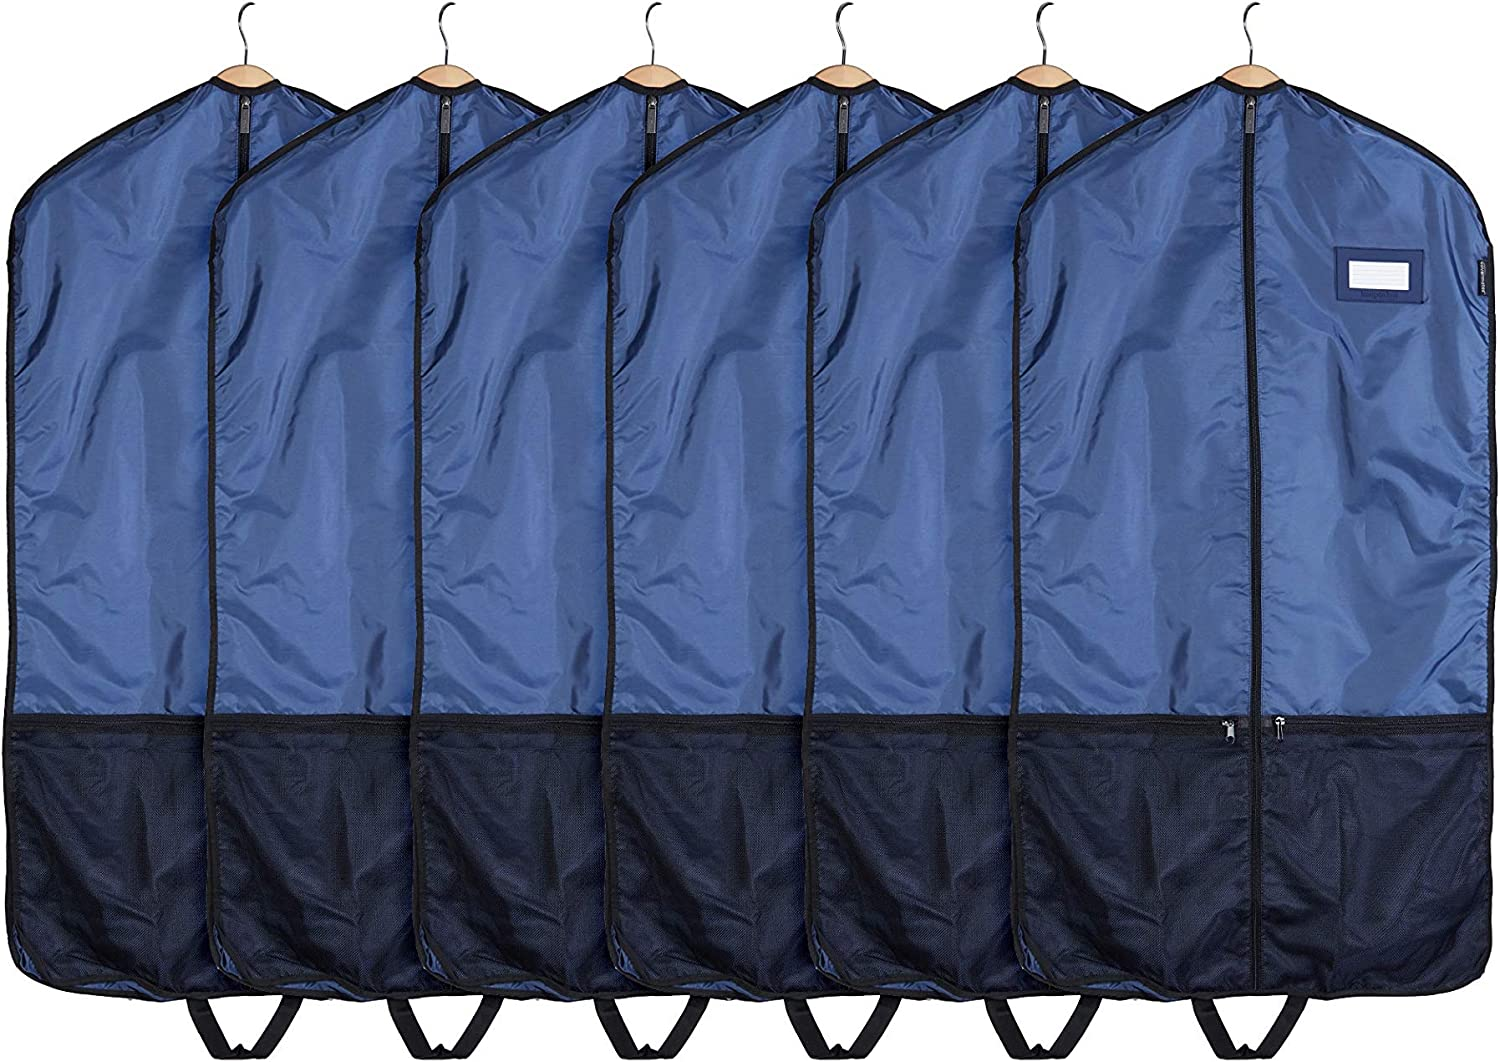 Product Covermates Selling Keepsakes Deluxe Garment Bag - Set Premium Polyester